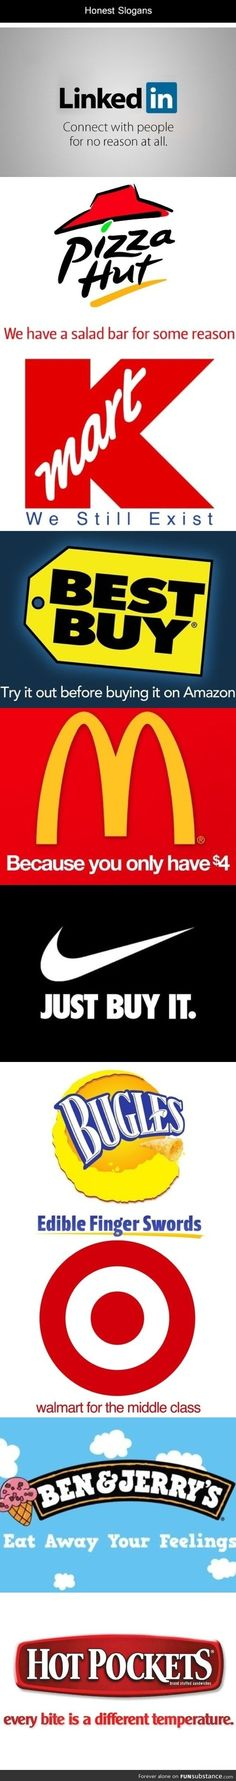 Honest company slogans... Mcdonalds is the best !!!! Ahahaha